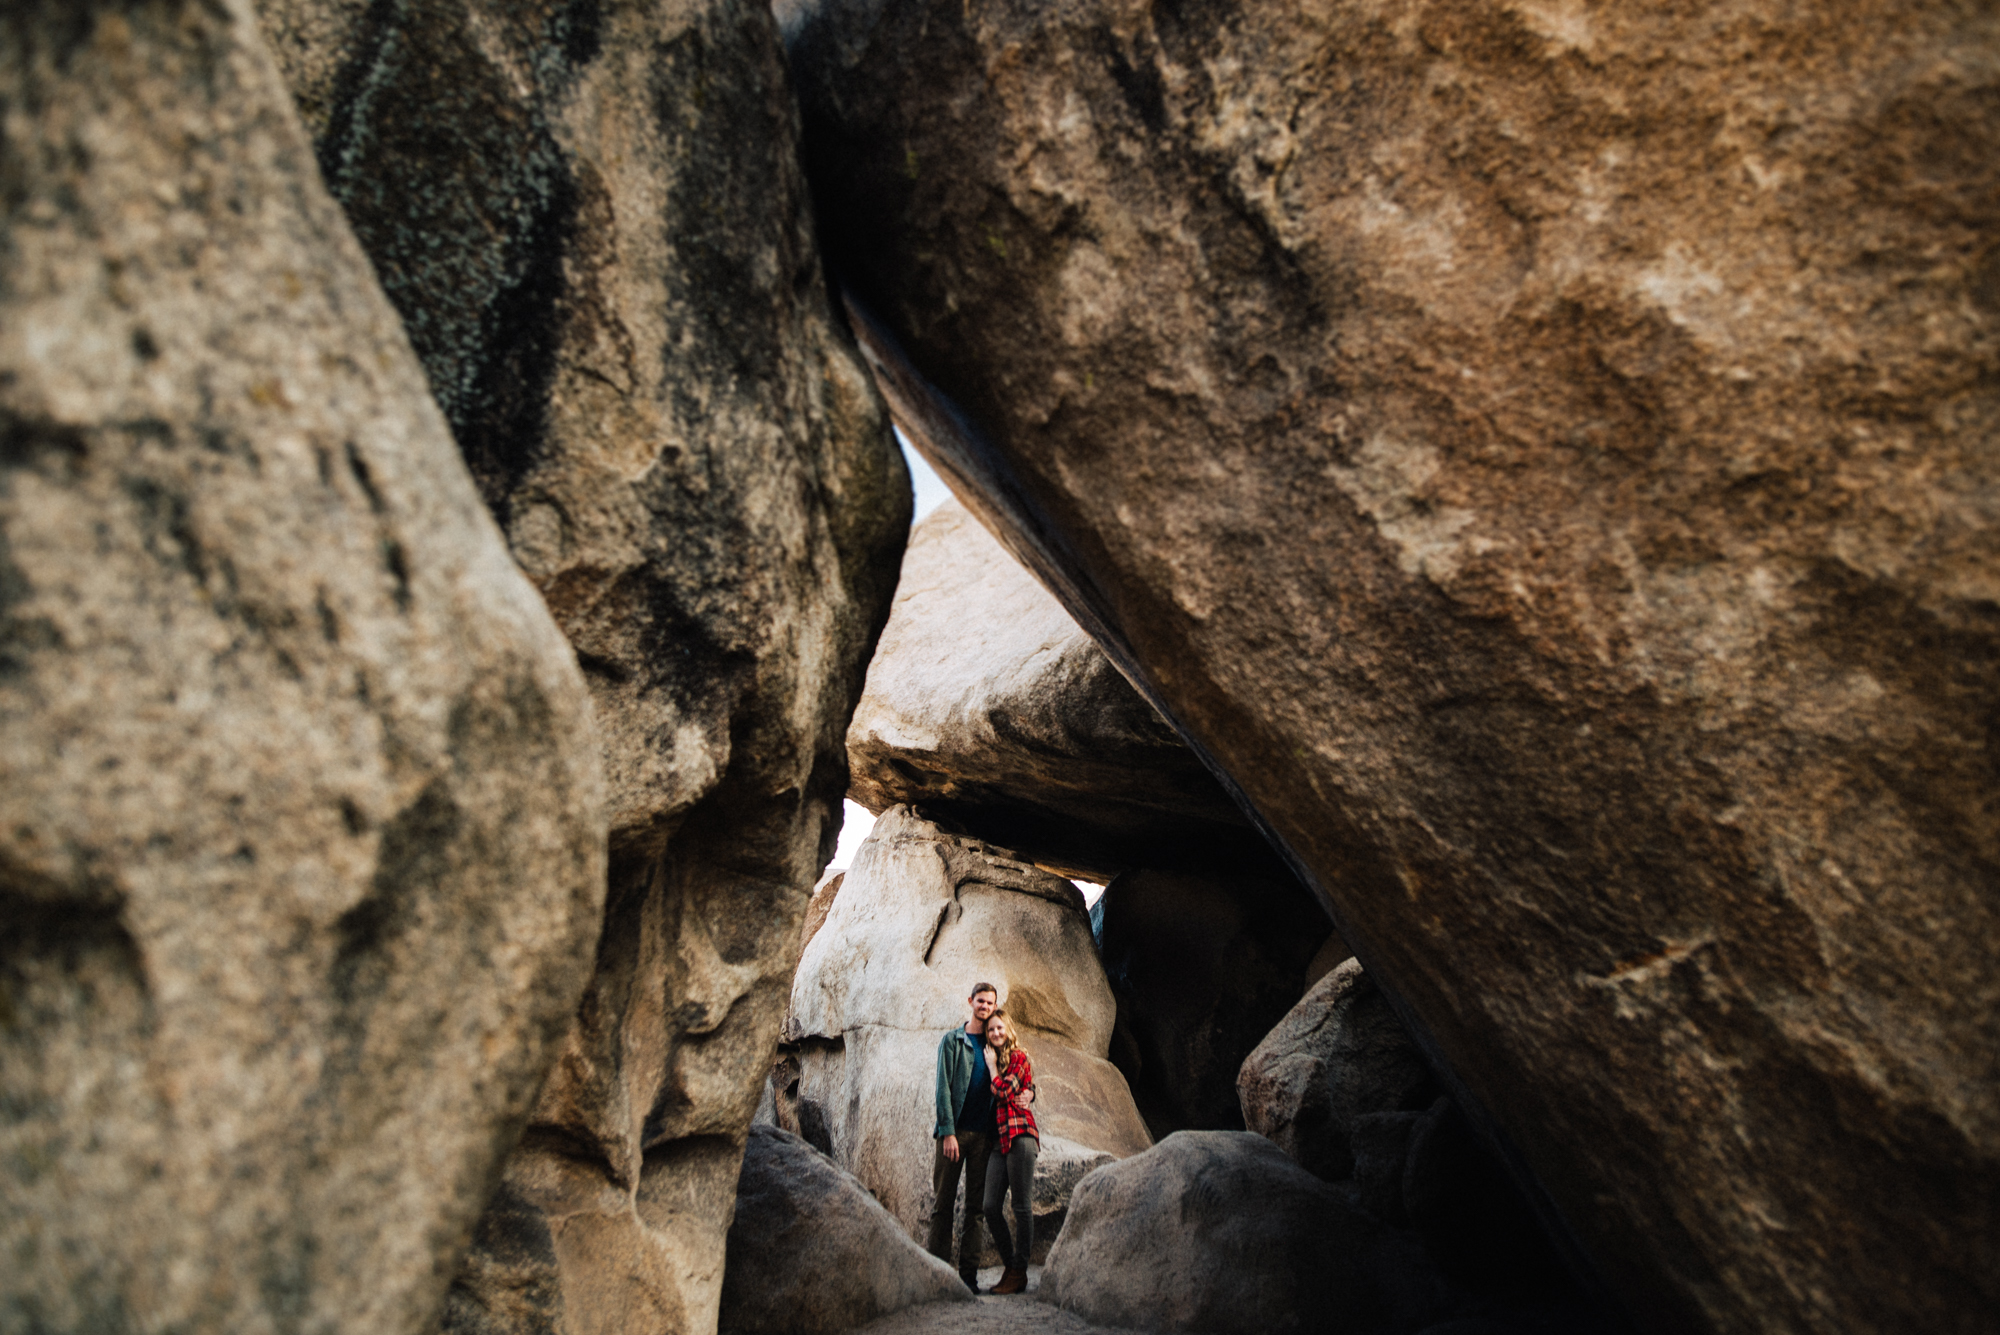 ©Isaiah & Taylor Photography - Destination Wedding Photographers - Joshua Tree, California Adventure Engagement-004.jpg